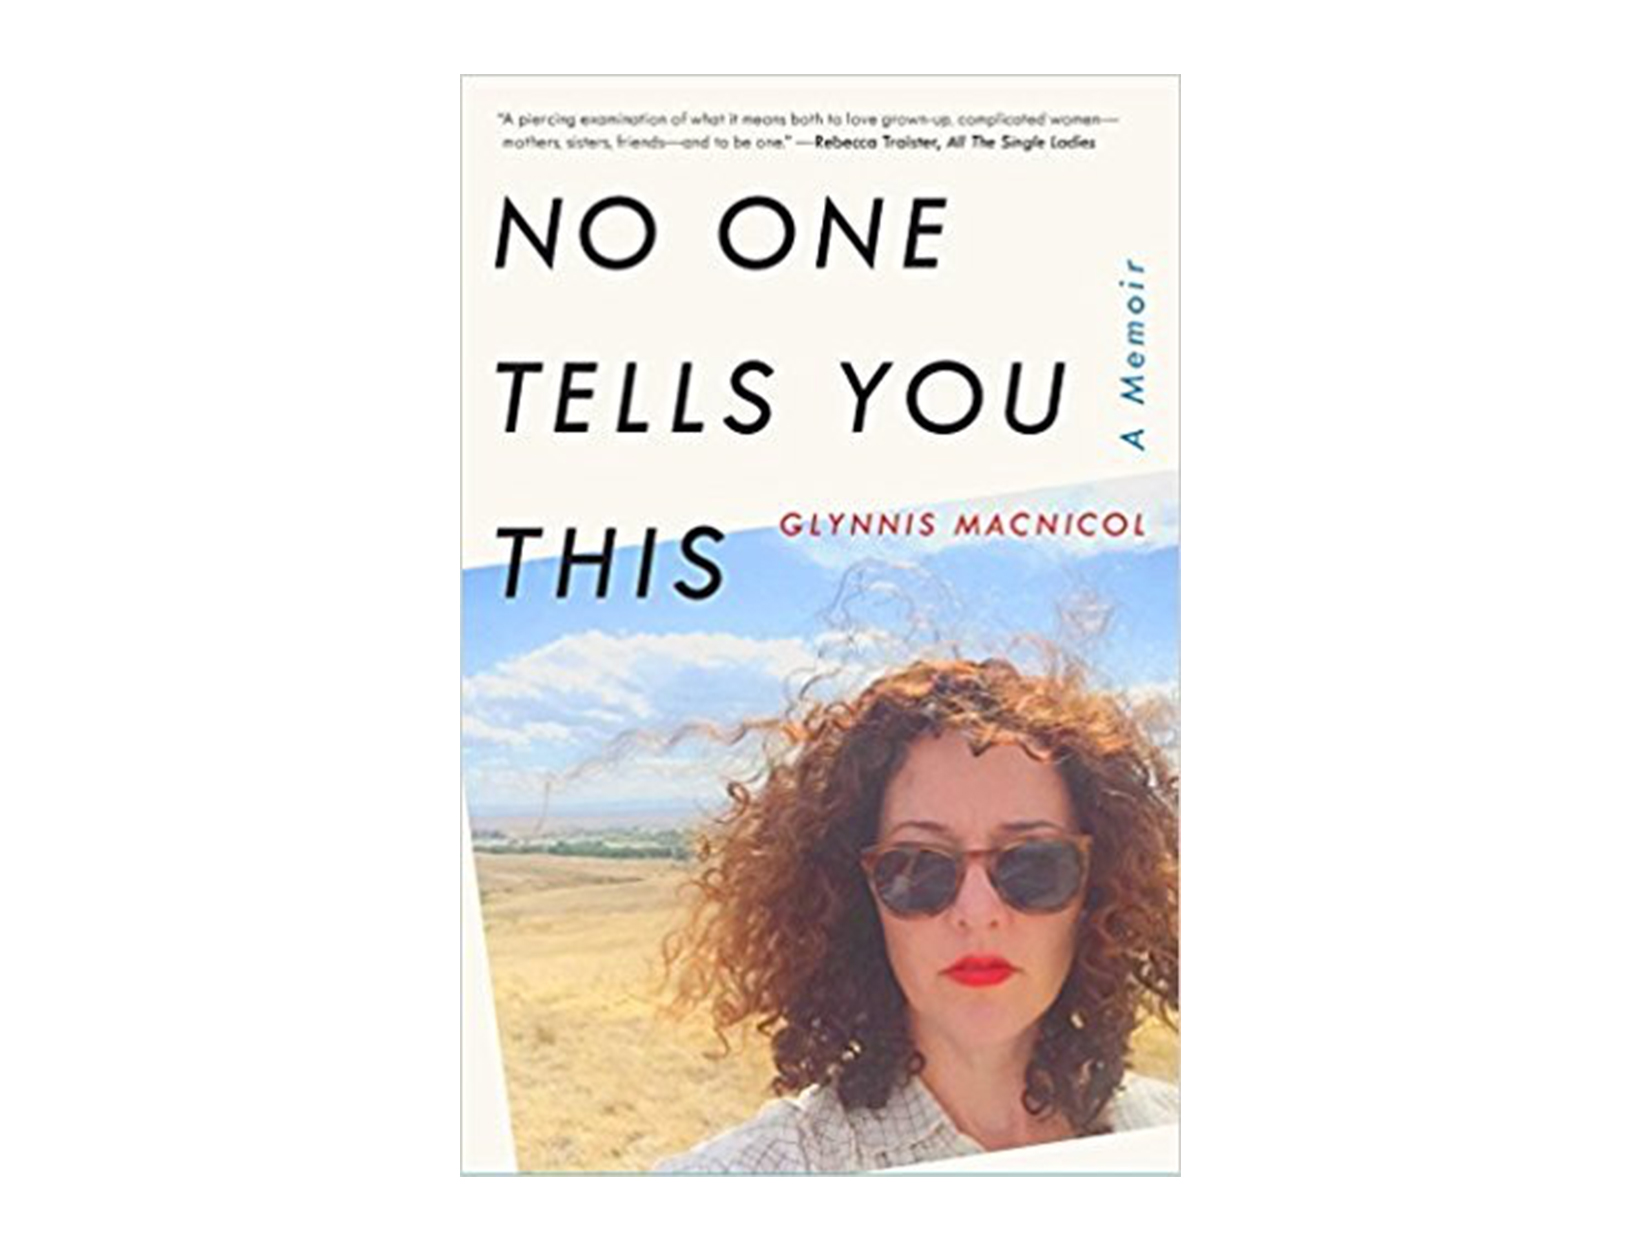 <em>No One Tells You This</em> by Glynnis MacNicol